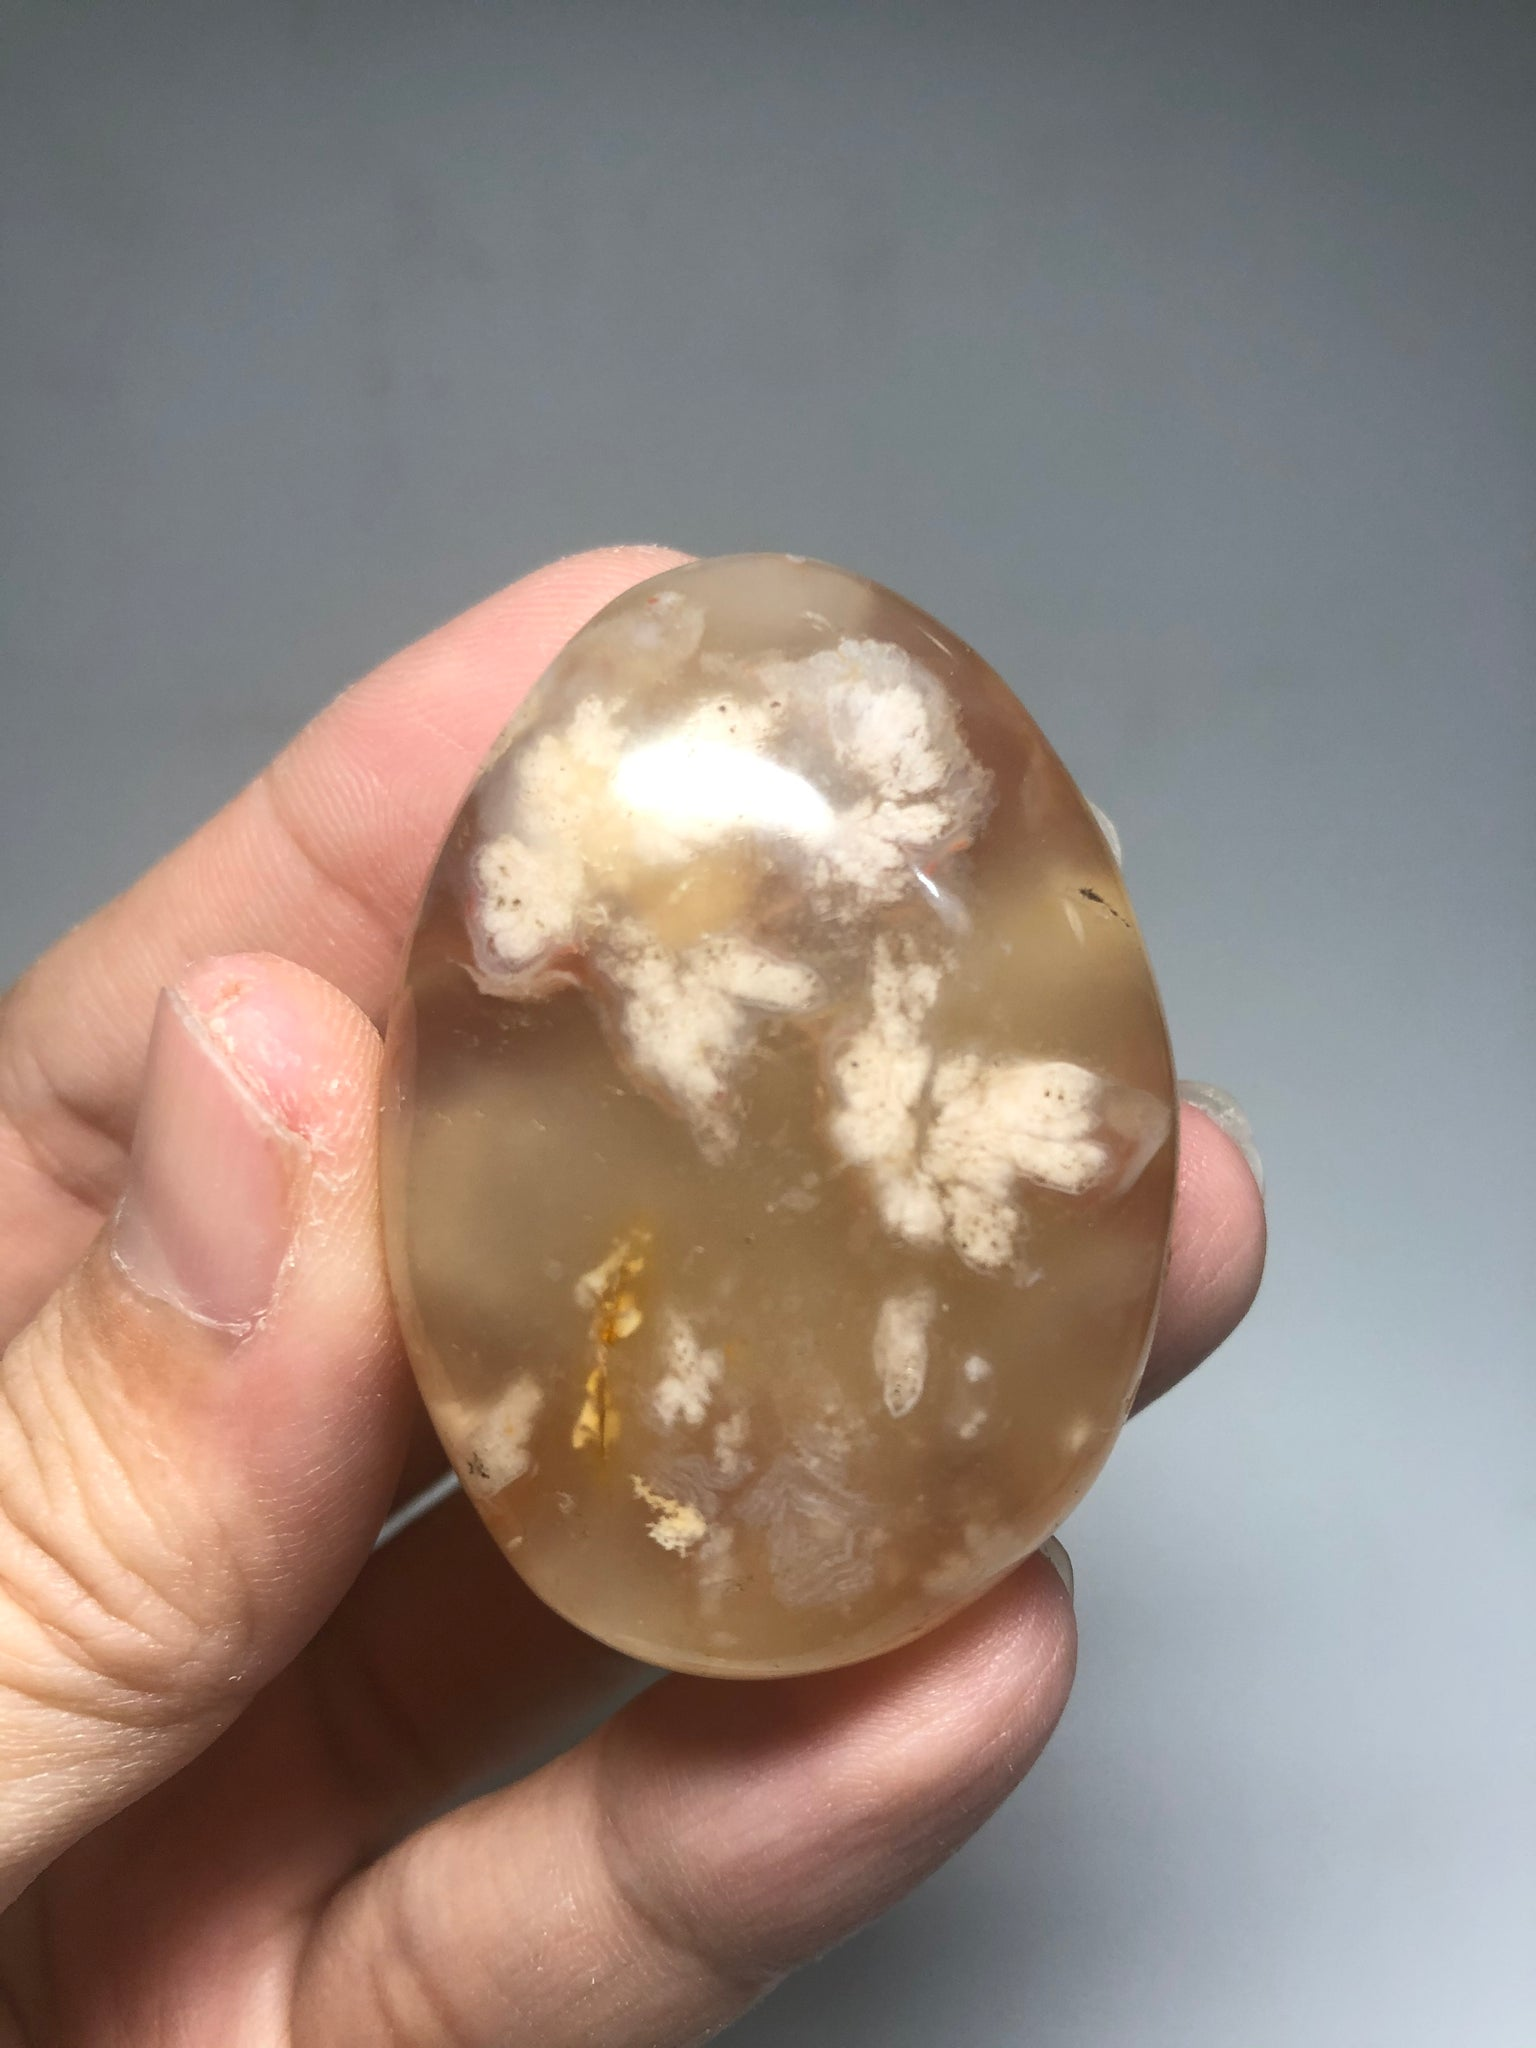 Flower Agate Palm Stones 55g